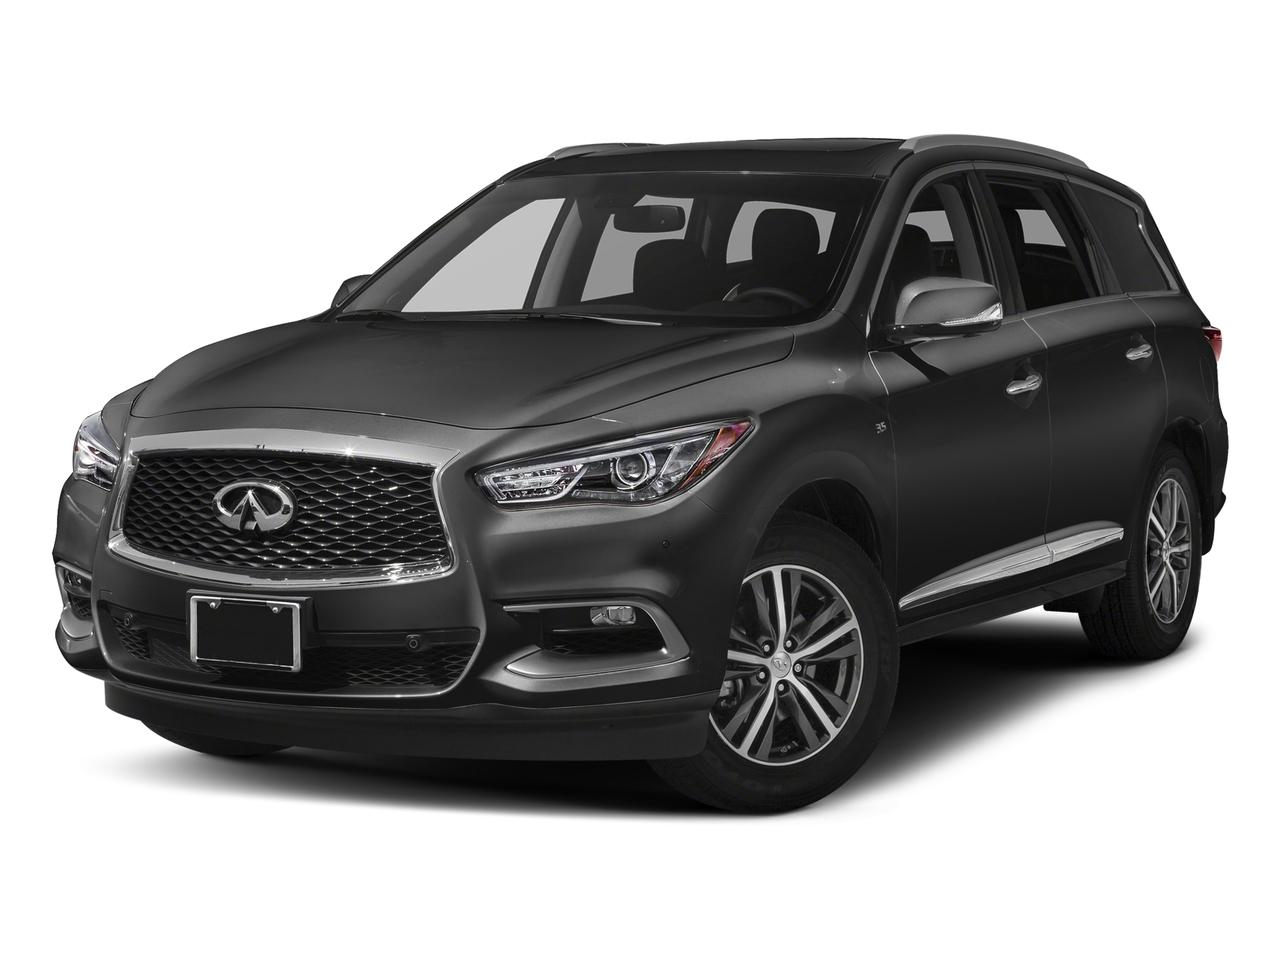 2017 INFINITI QX60 Vehicle Photo in Terryville, CT 06786